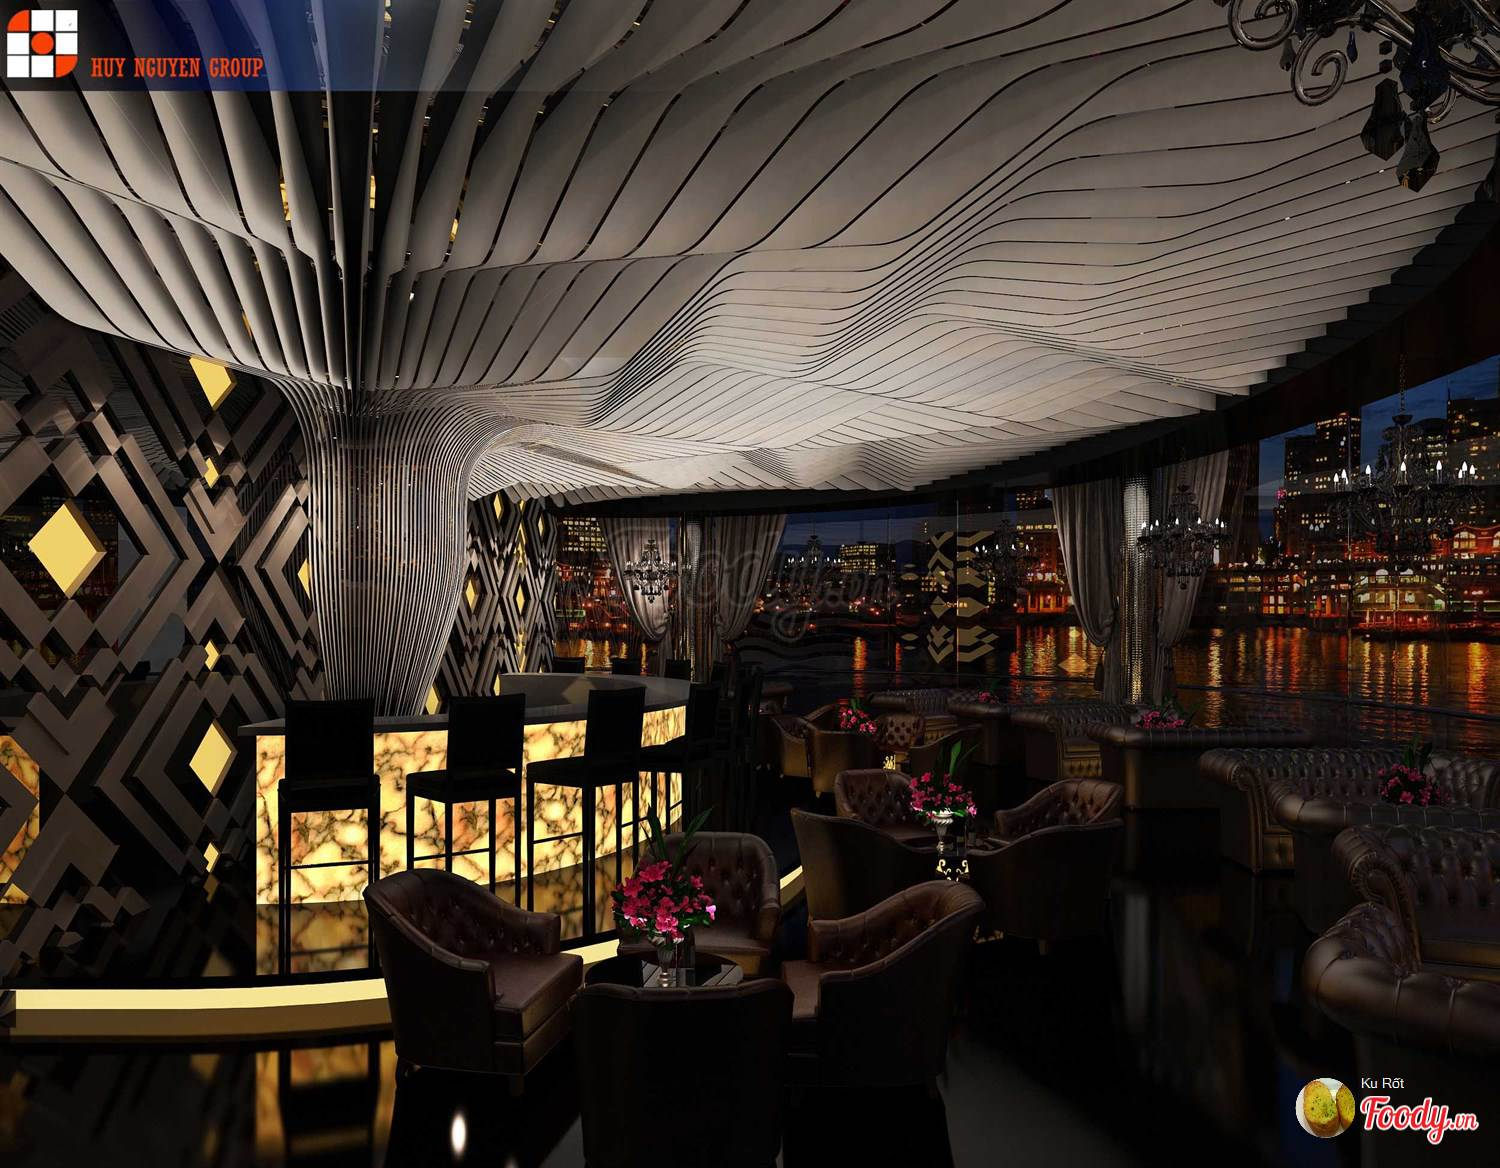 Bavico Rooftop Sky Lounge and Club opens